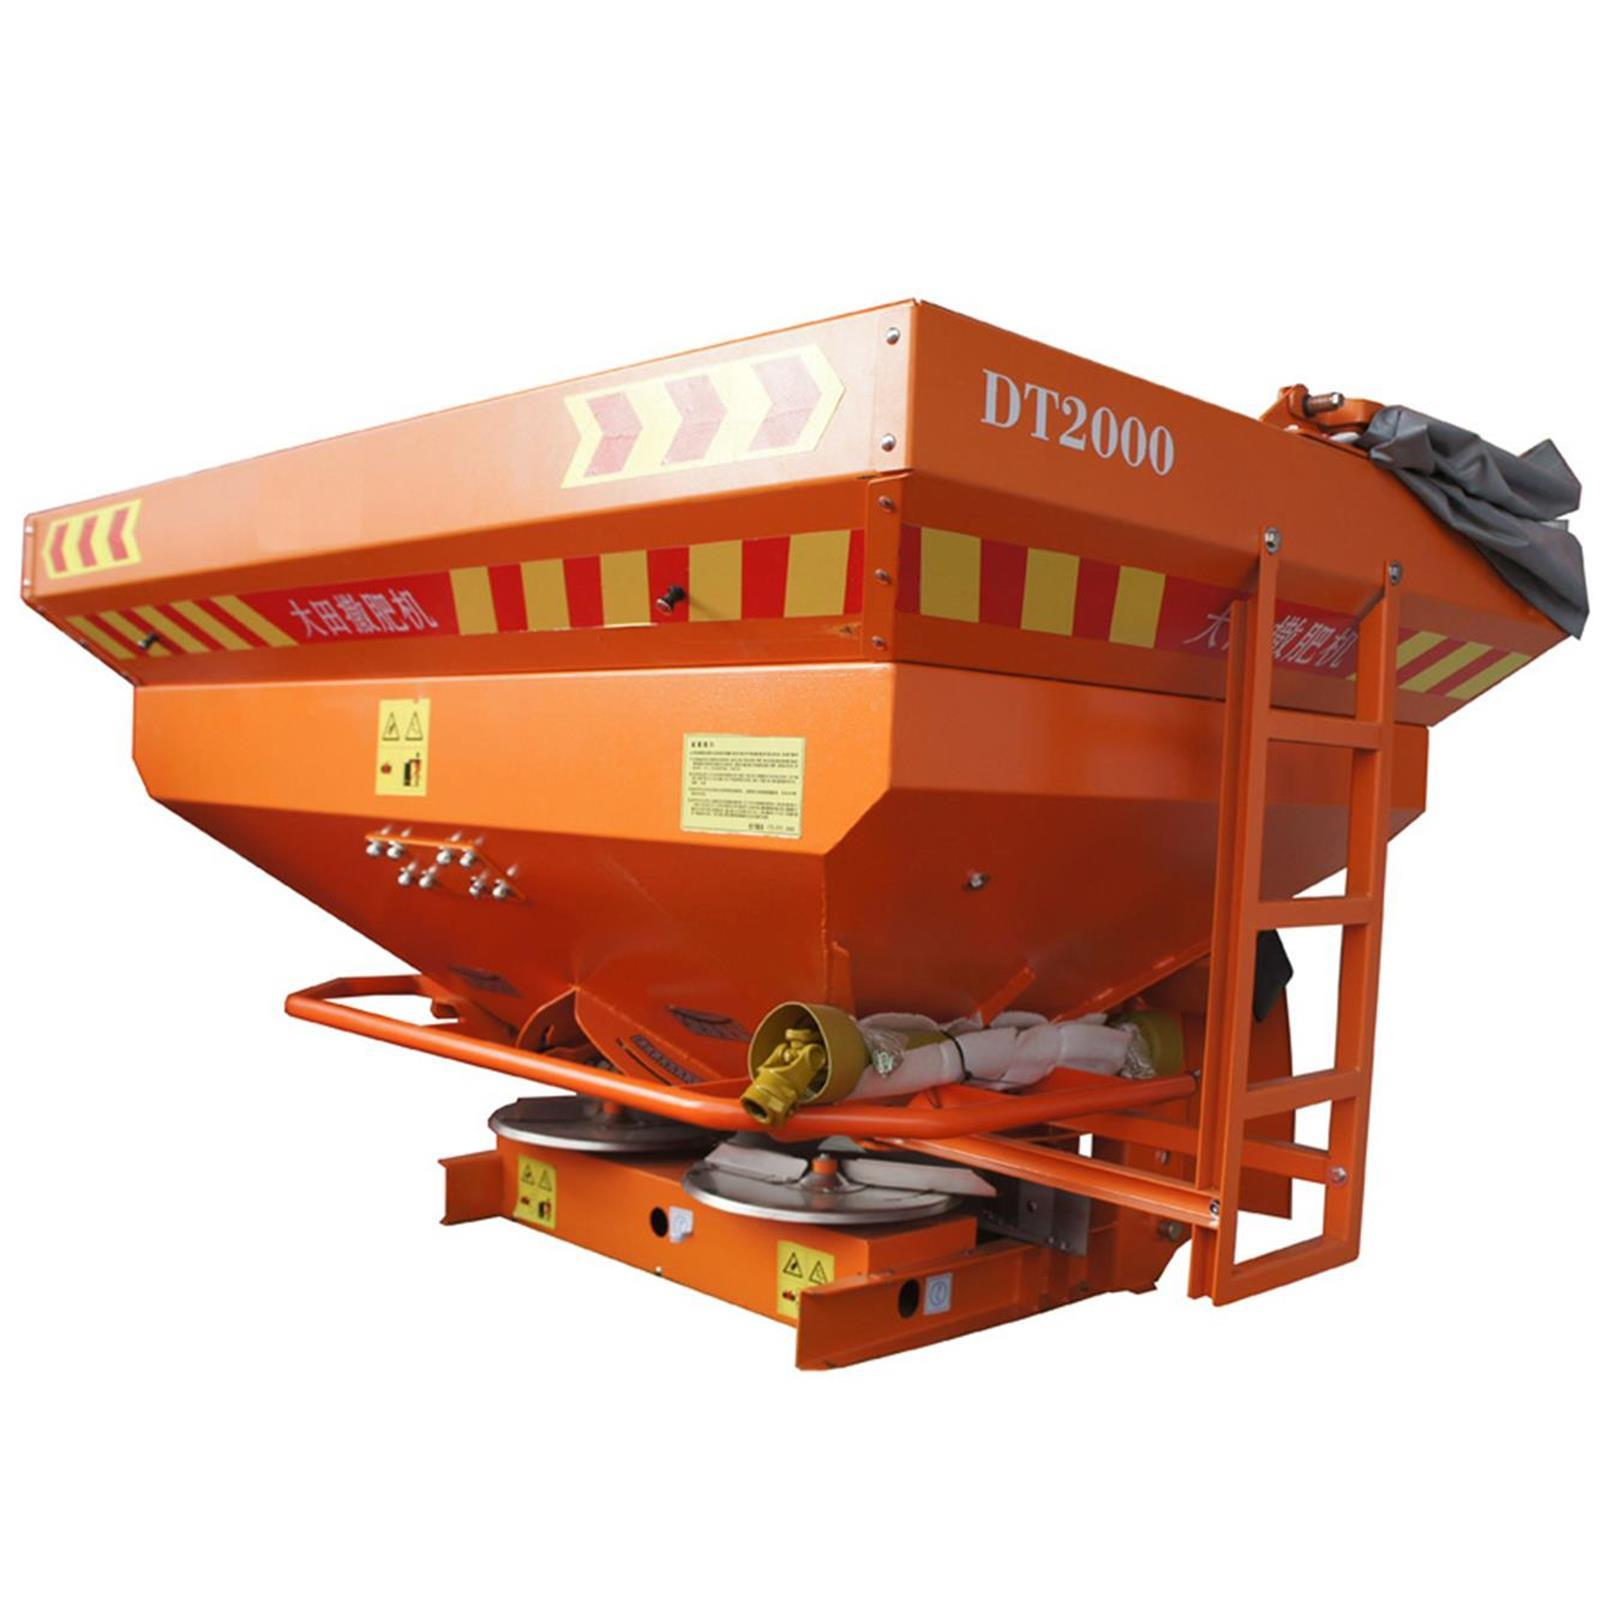 3 Point Hitch Fertilizer Spreader